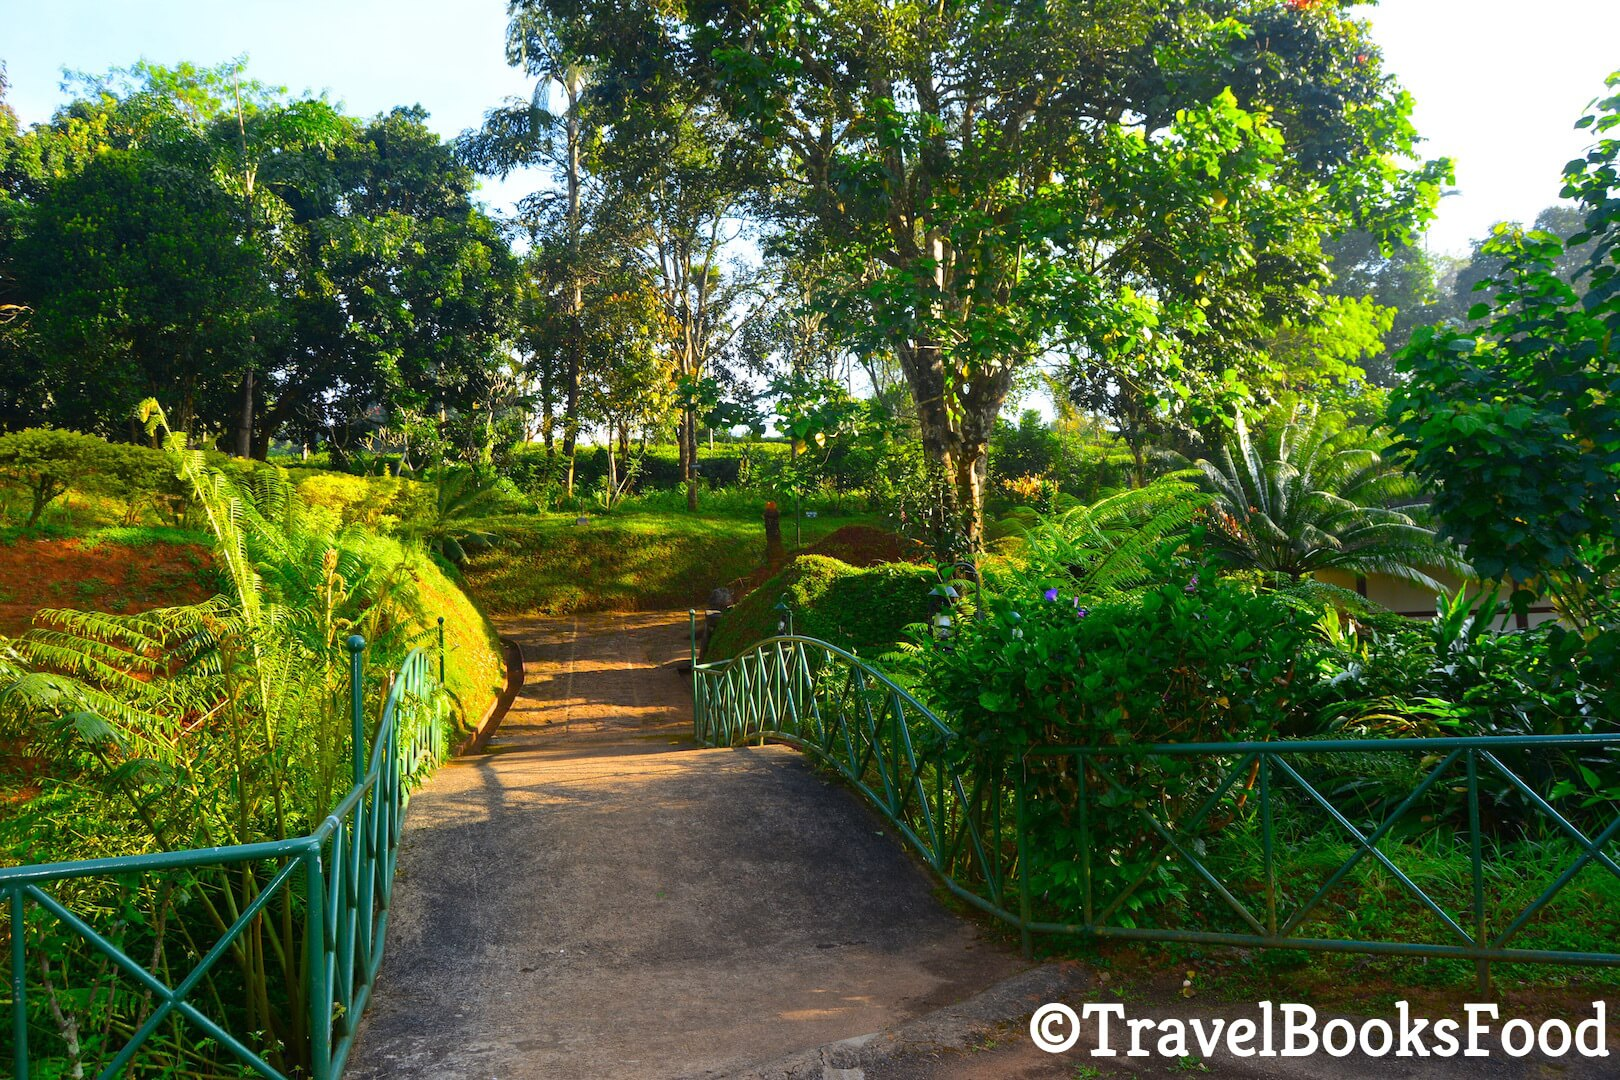 A pathway surrounded by lots of greenery in Kerala, India